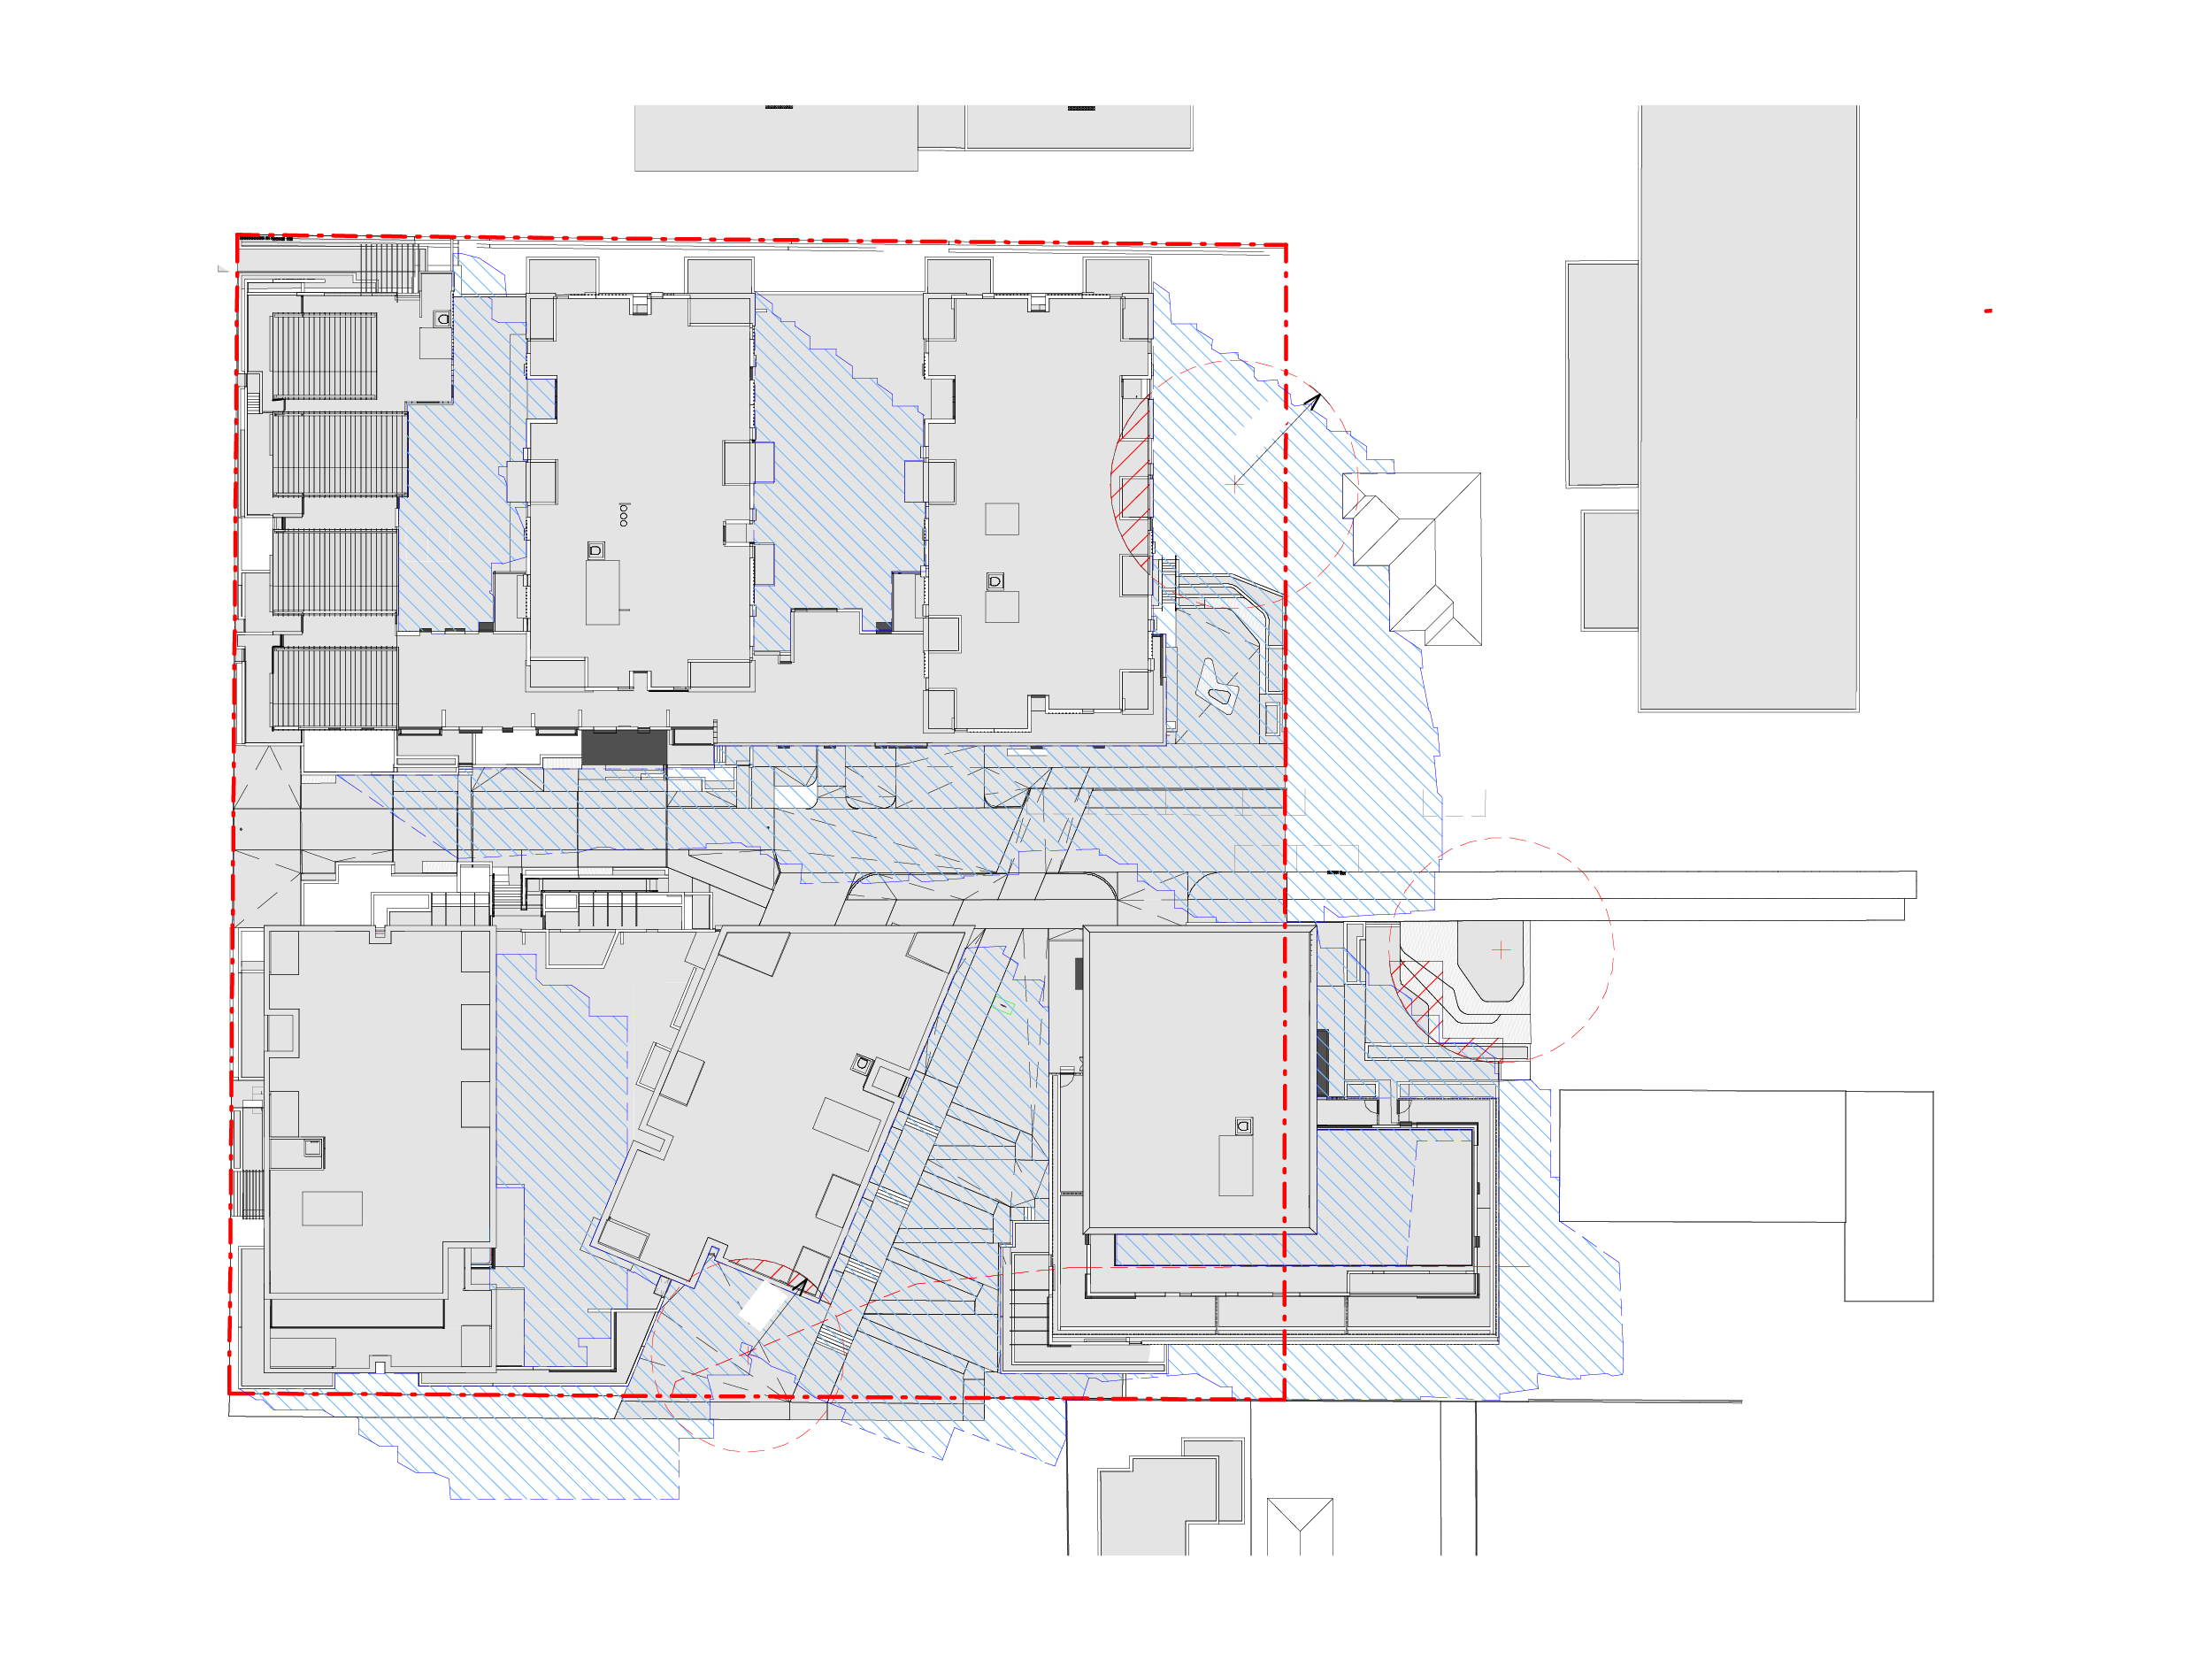 Diagram showing the shadows created by the new Bills Street development on 22 September at 3pm